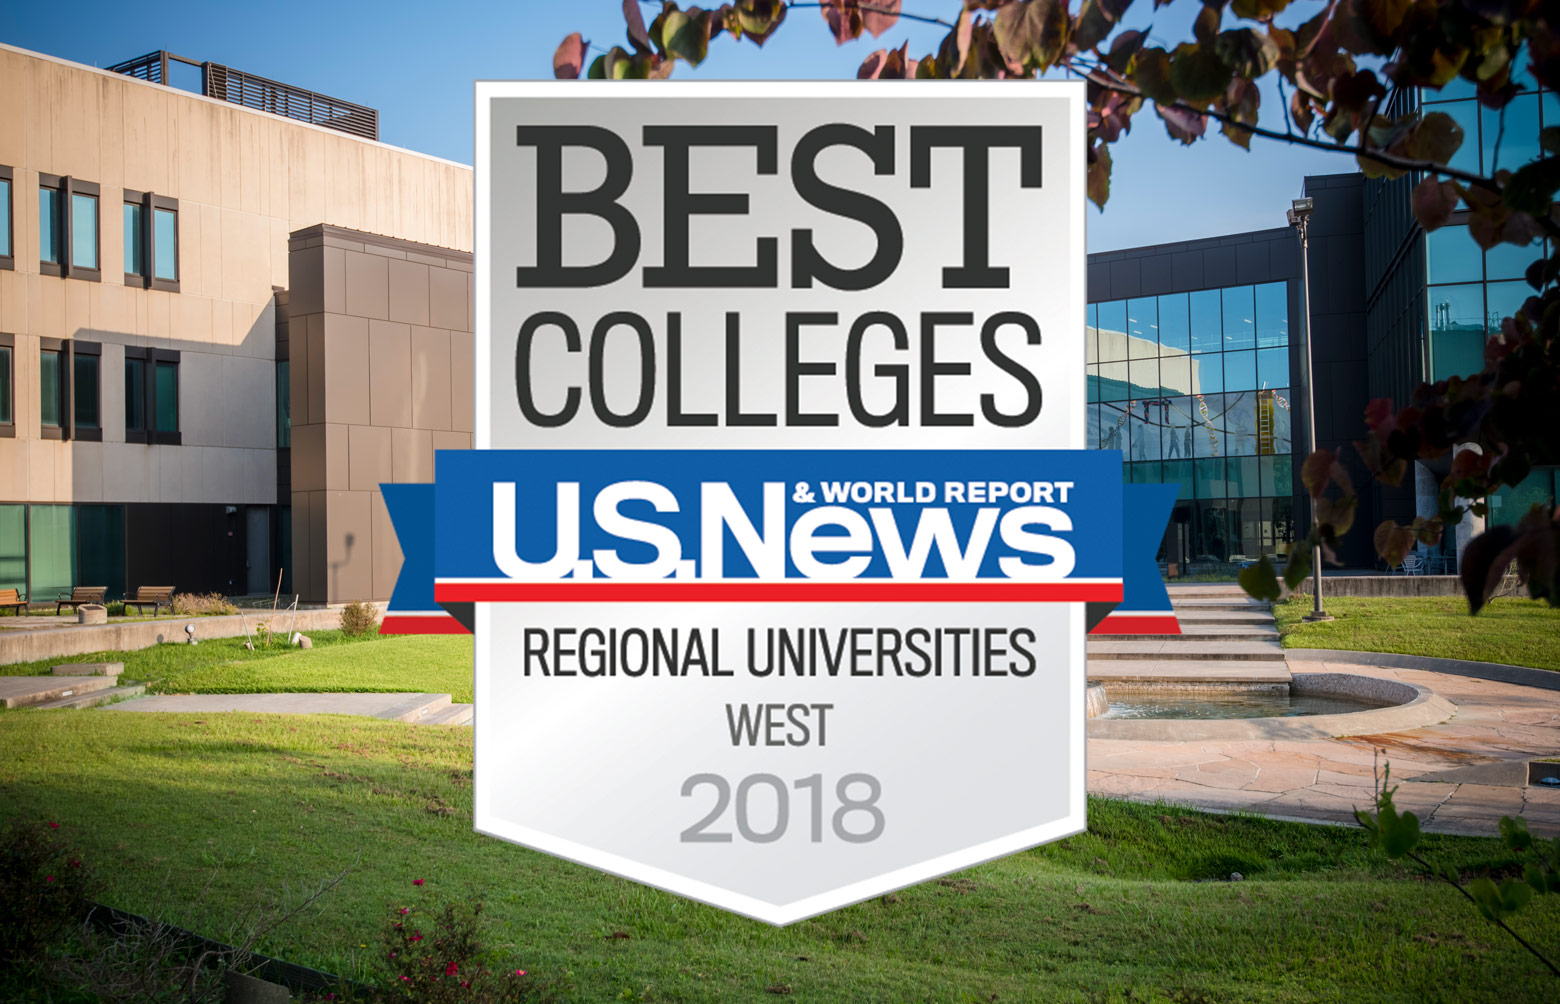 u.s.news and world reports best colleges